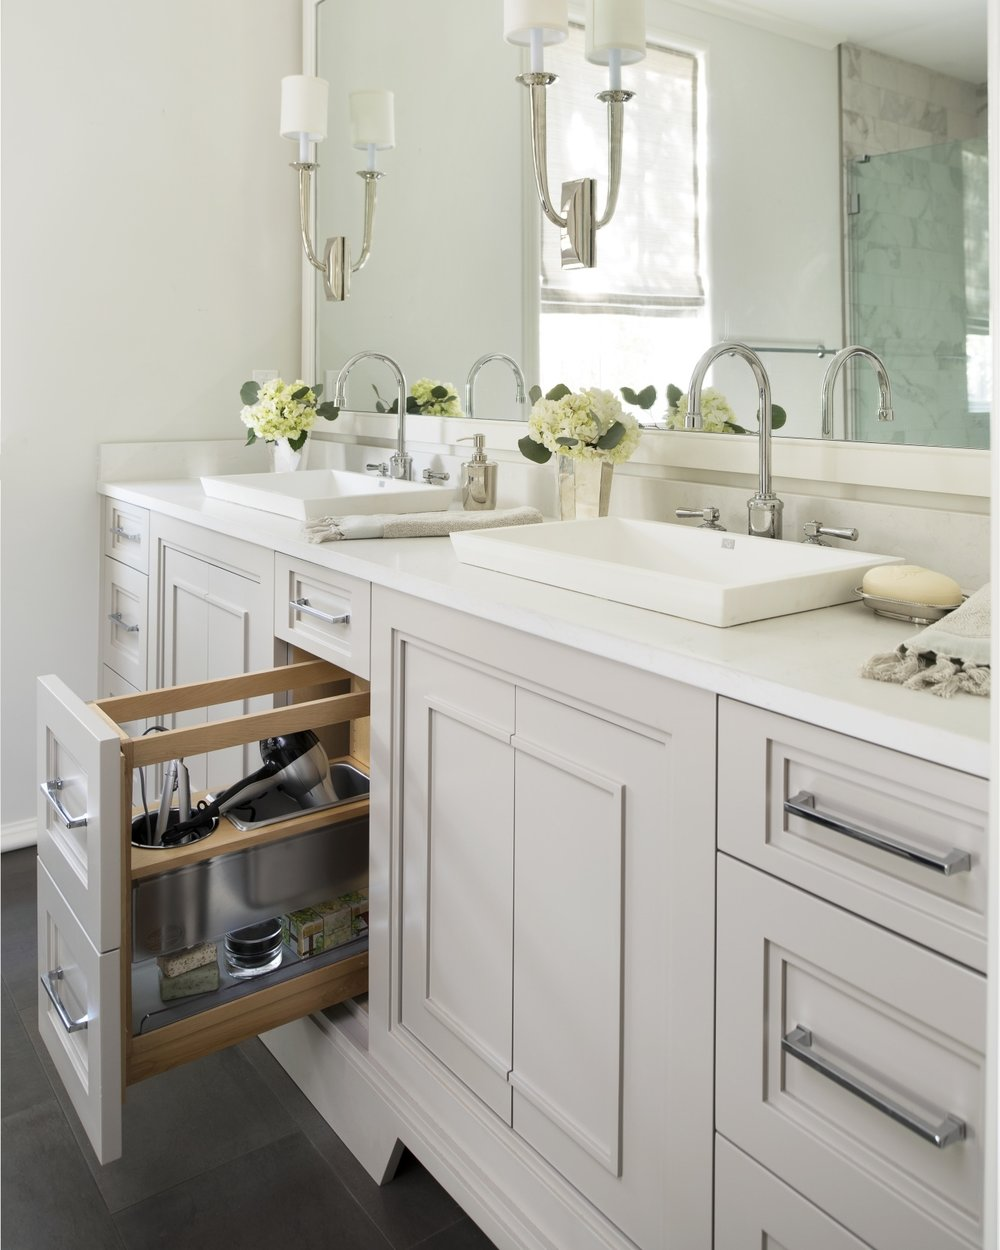 Vanity Cabinet Solutions -